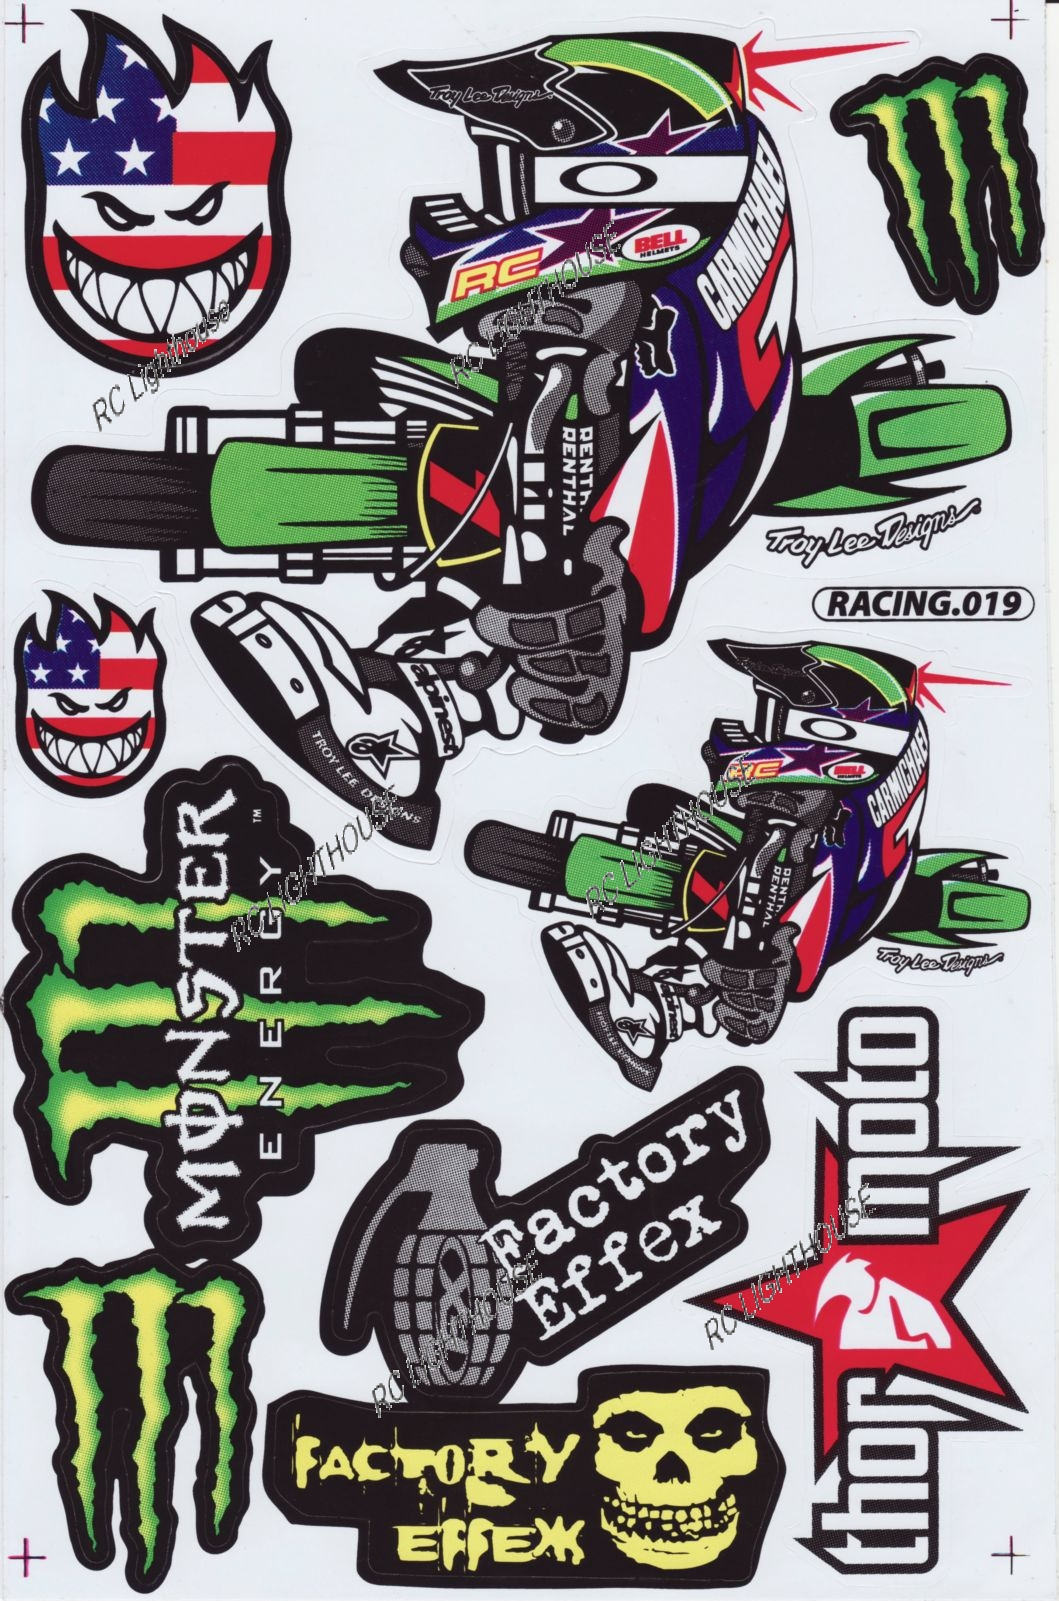 monster energy rc truck with 2cd9d570ecd24365a0fb89b9fc333781 on 8th Scale MadFire 21 Nitro Gas 4WD RC Buggy 100 RTR For Beginners Gama Orange moreover 40 Free Printable Truck Coloring Pages Download moreover 8186 further Robby Gordons 2014 Dakar Rally Hst furthermore Baja Ta a.